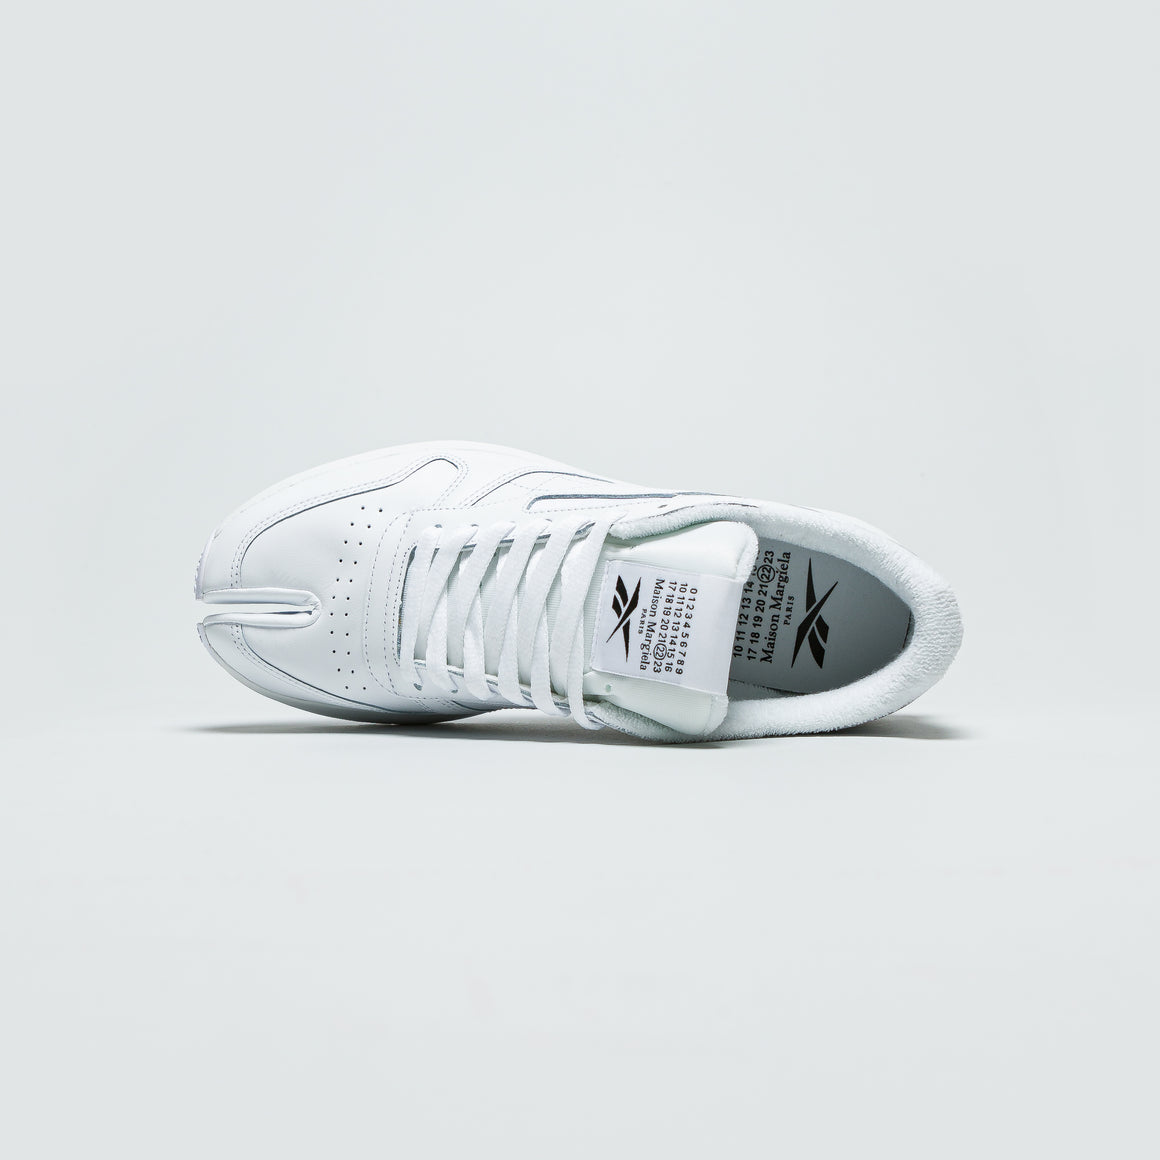 Reebok - Project 0 CL x MMM - White - Up There